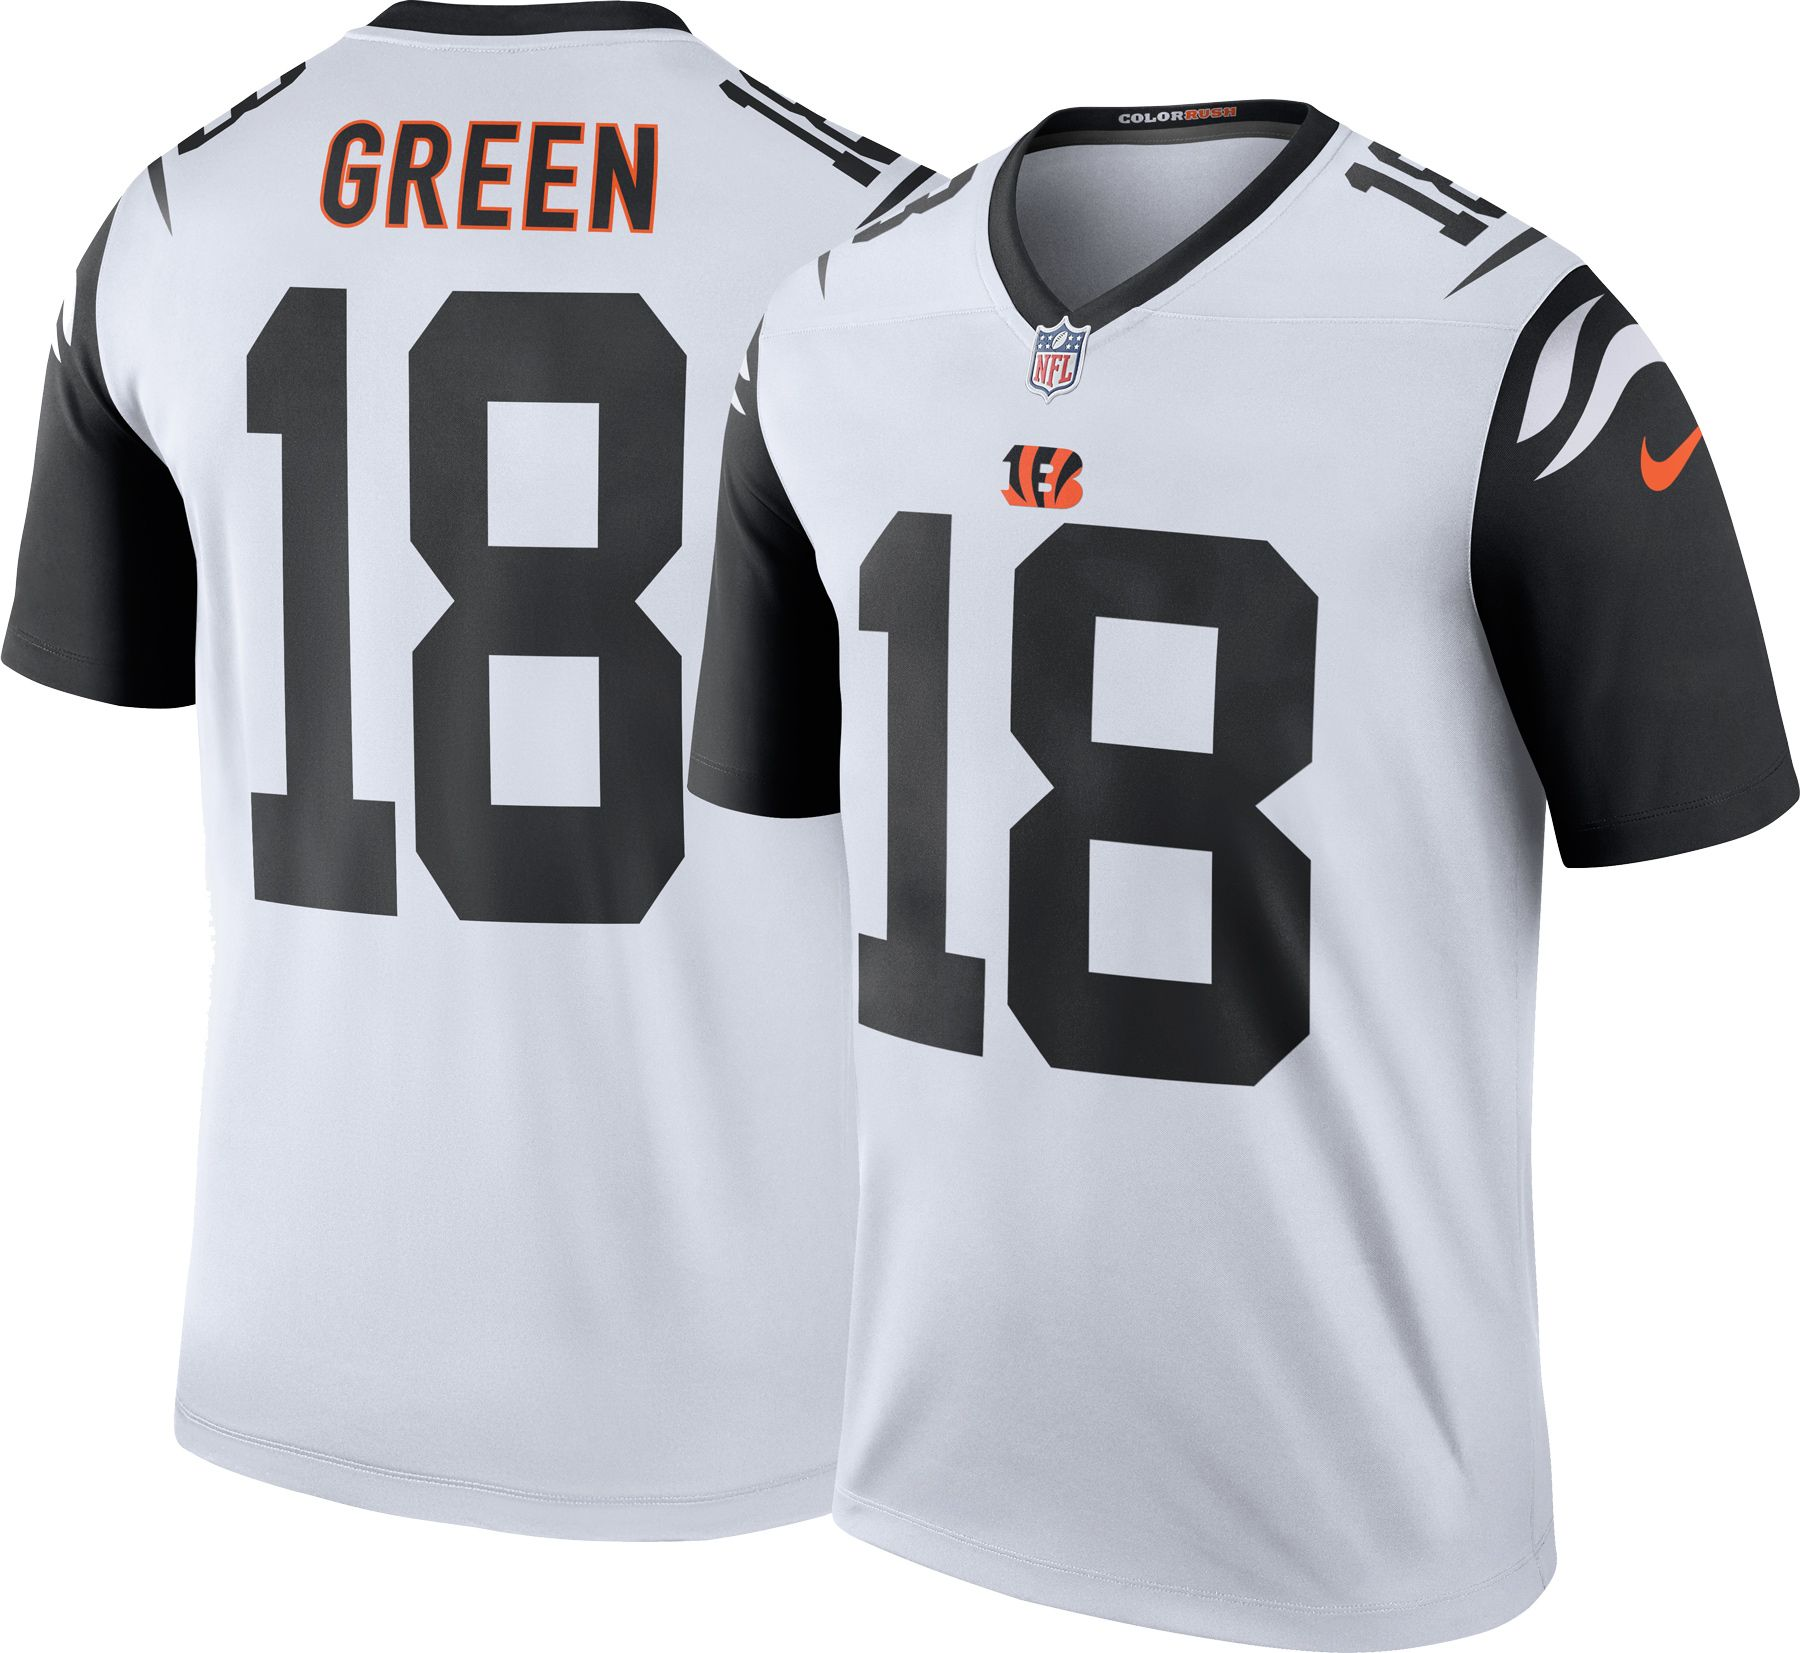 cincinnati bengals youth jersey aj green